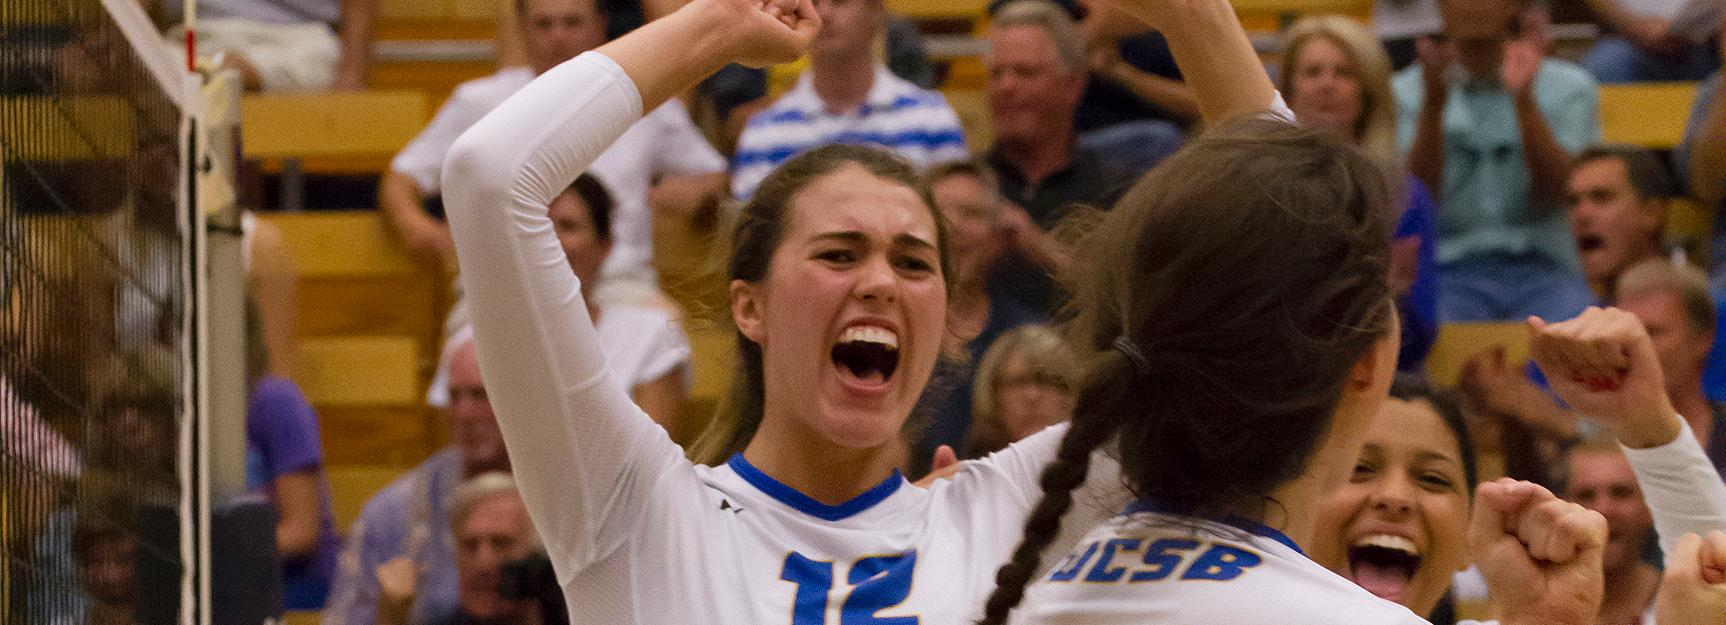 UCSB Sweeps Cal Poly, Picks Up Eighth Straight Win